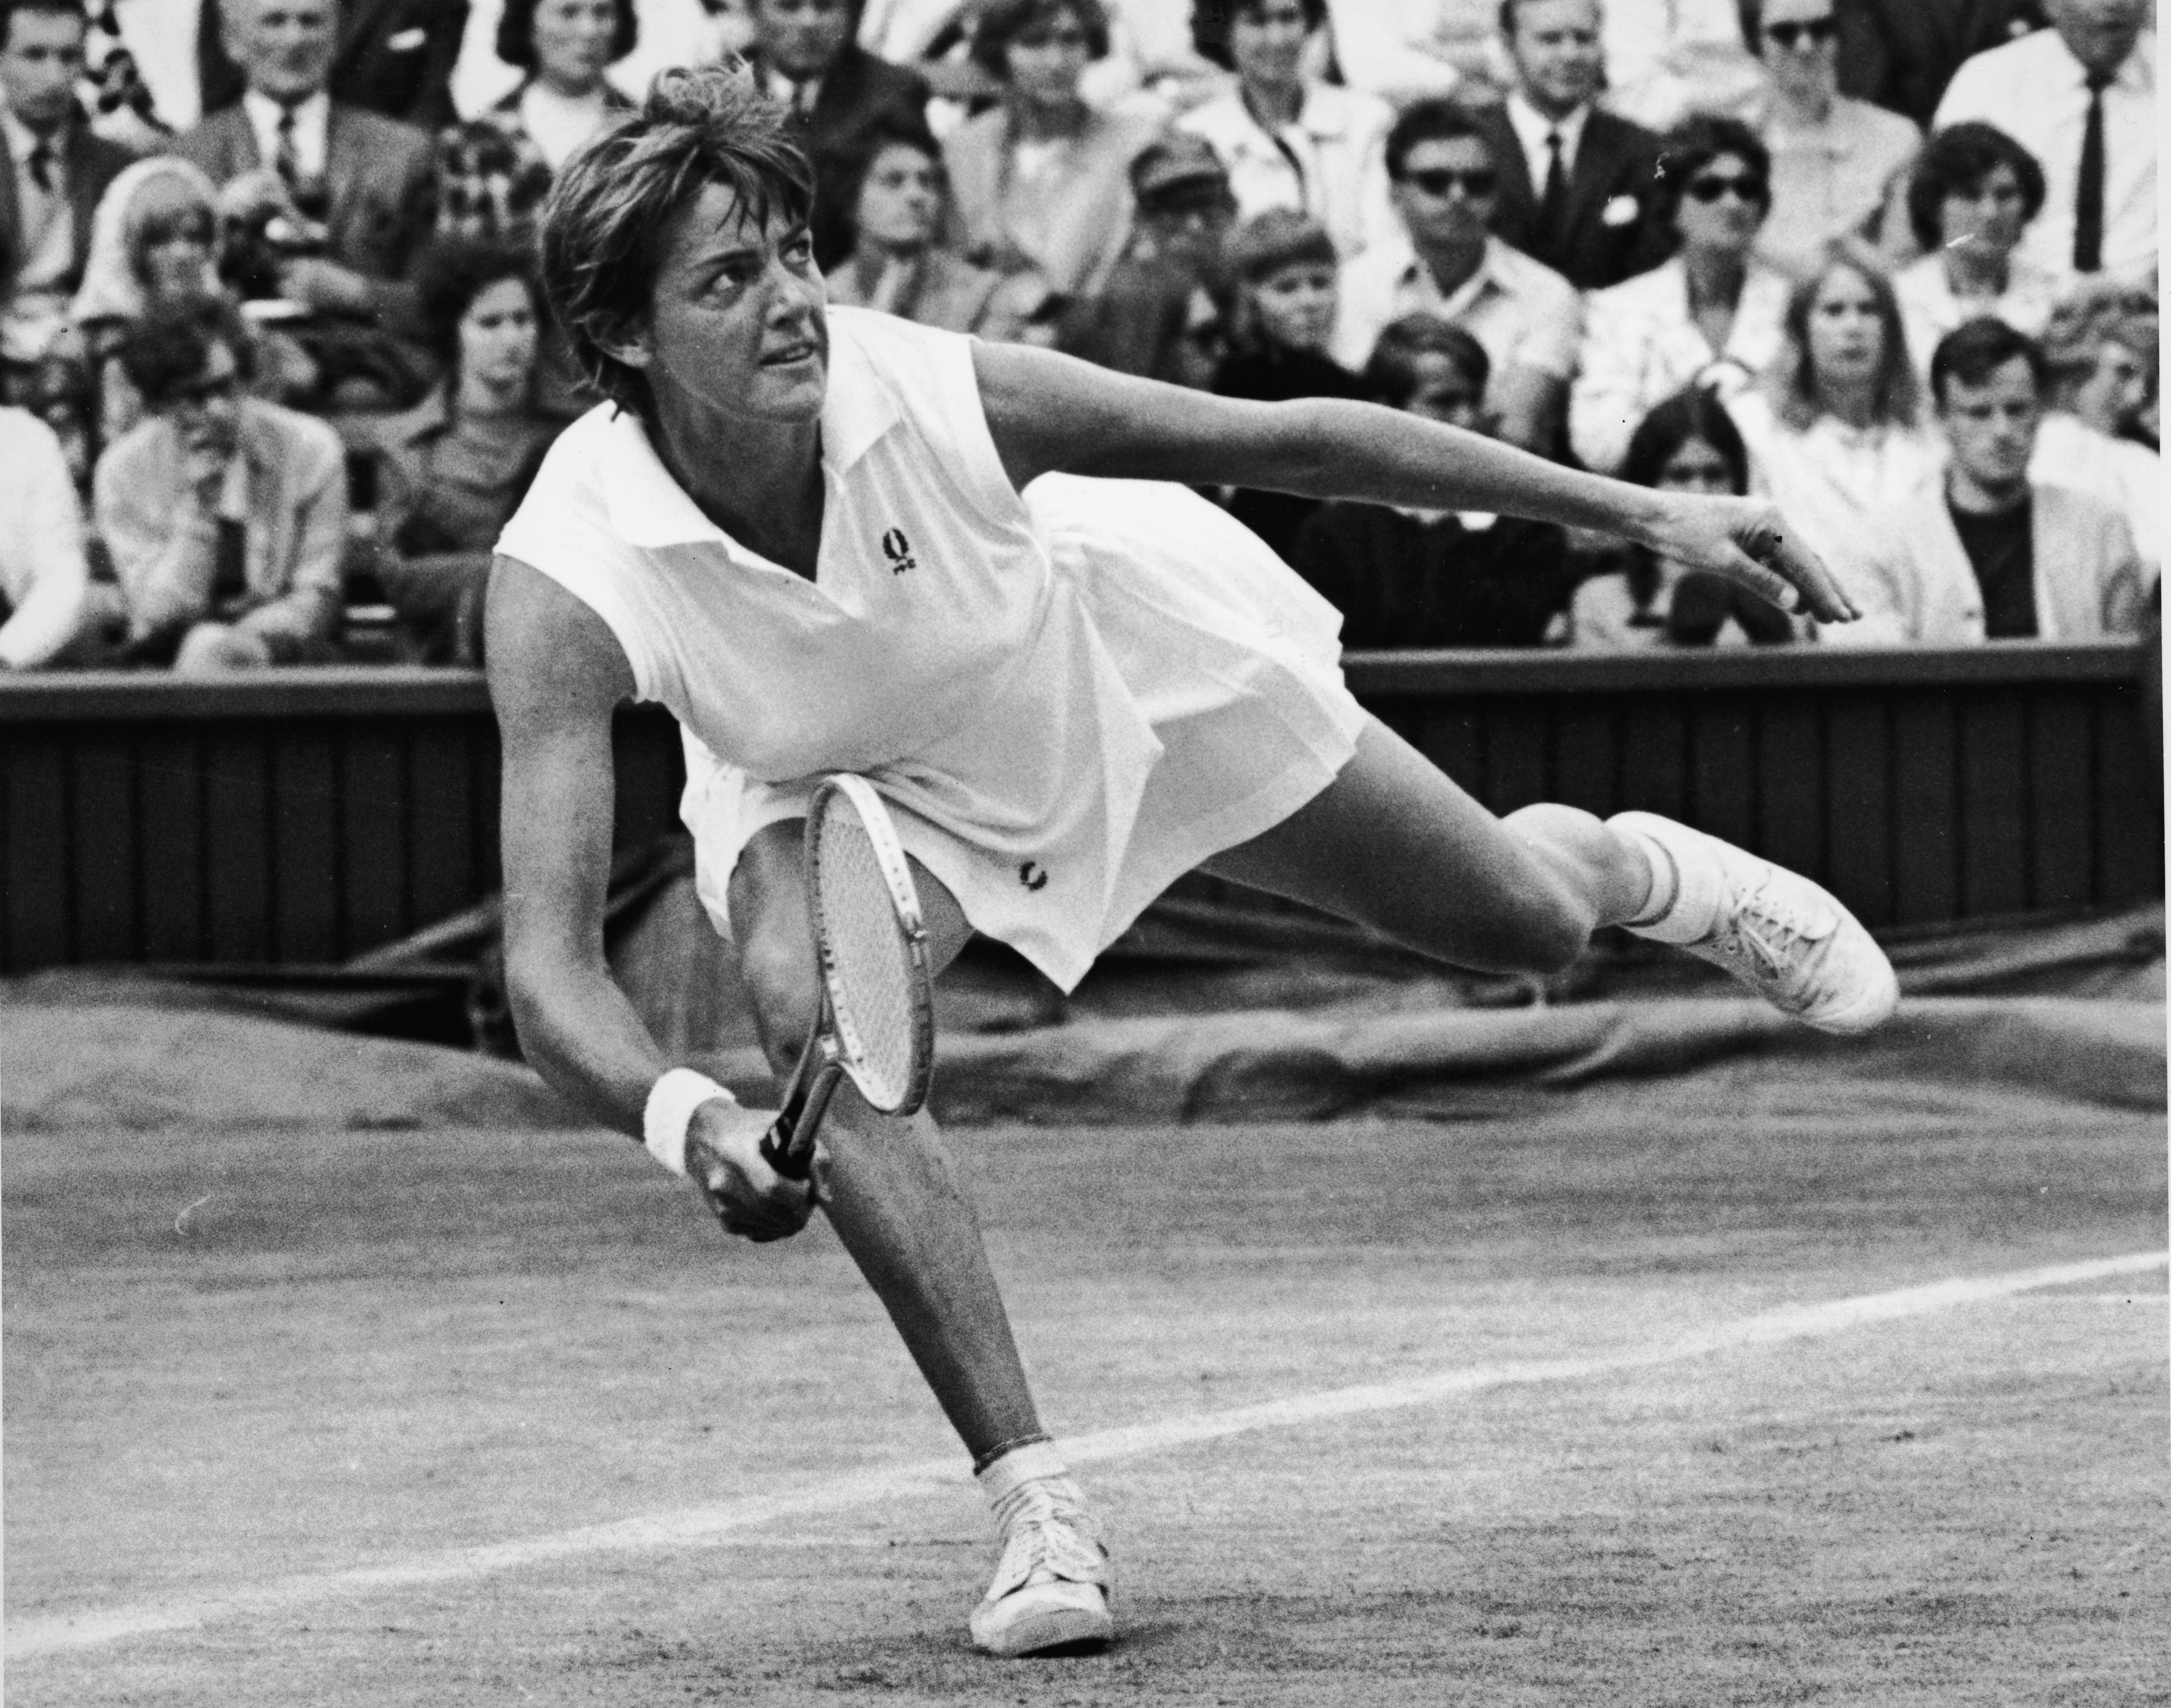 Australian tennis player Margaret Court lunges for a ball during her Wimbledom semi-final match against Rosemary Casals in 1970.